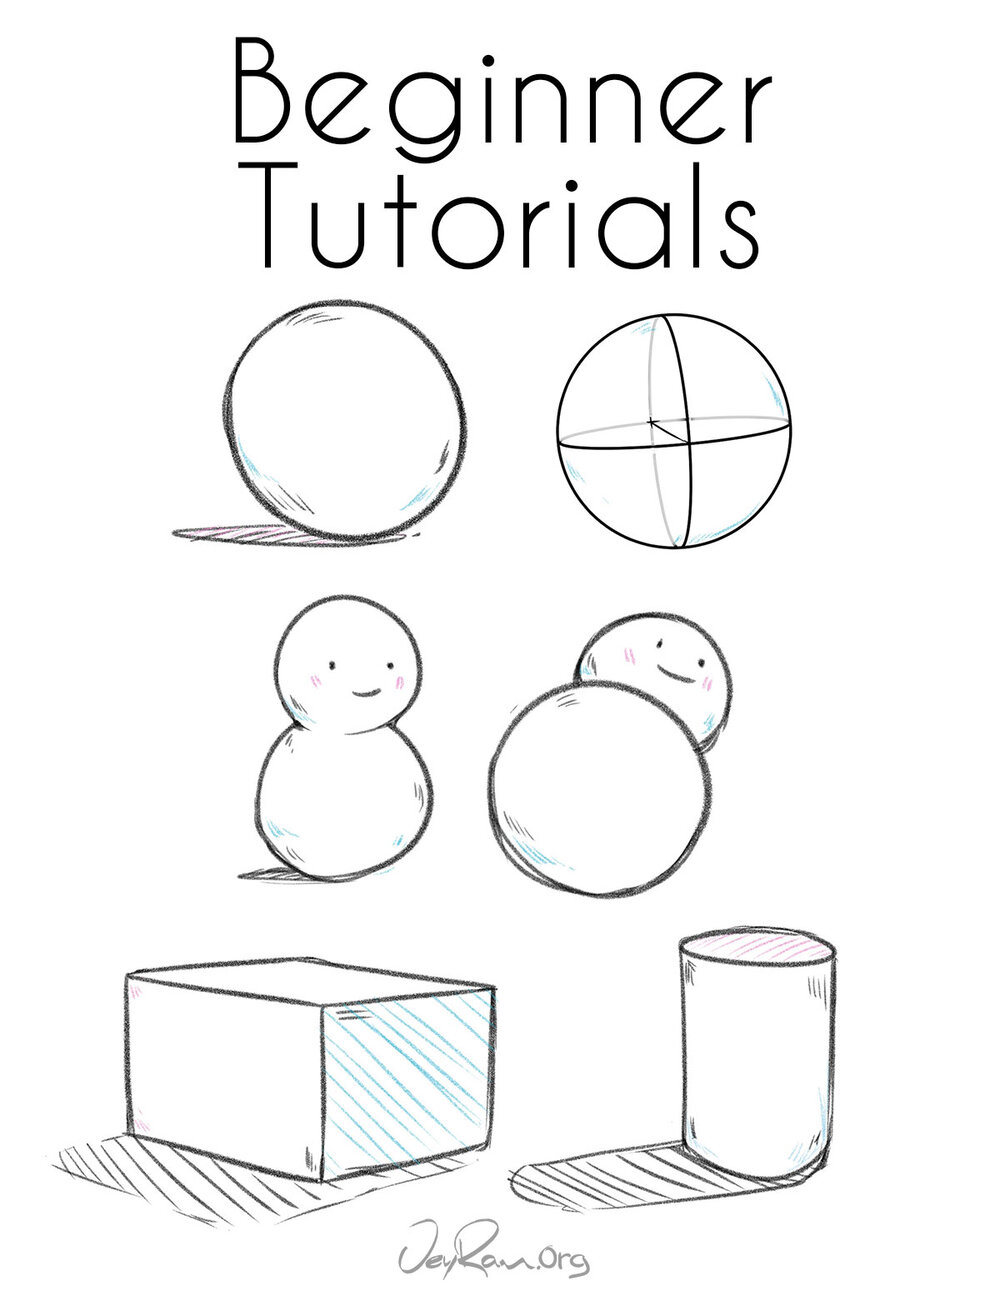 How To Draw Tutorials For Beginners With Step By Step Pdf Worksheets Jeyram Spiritual Art